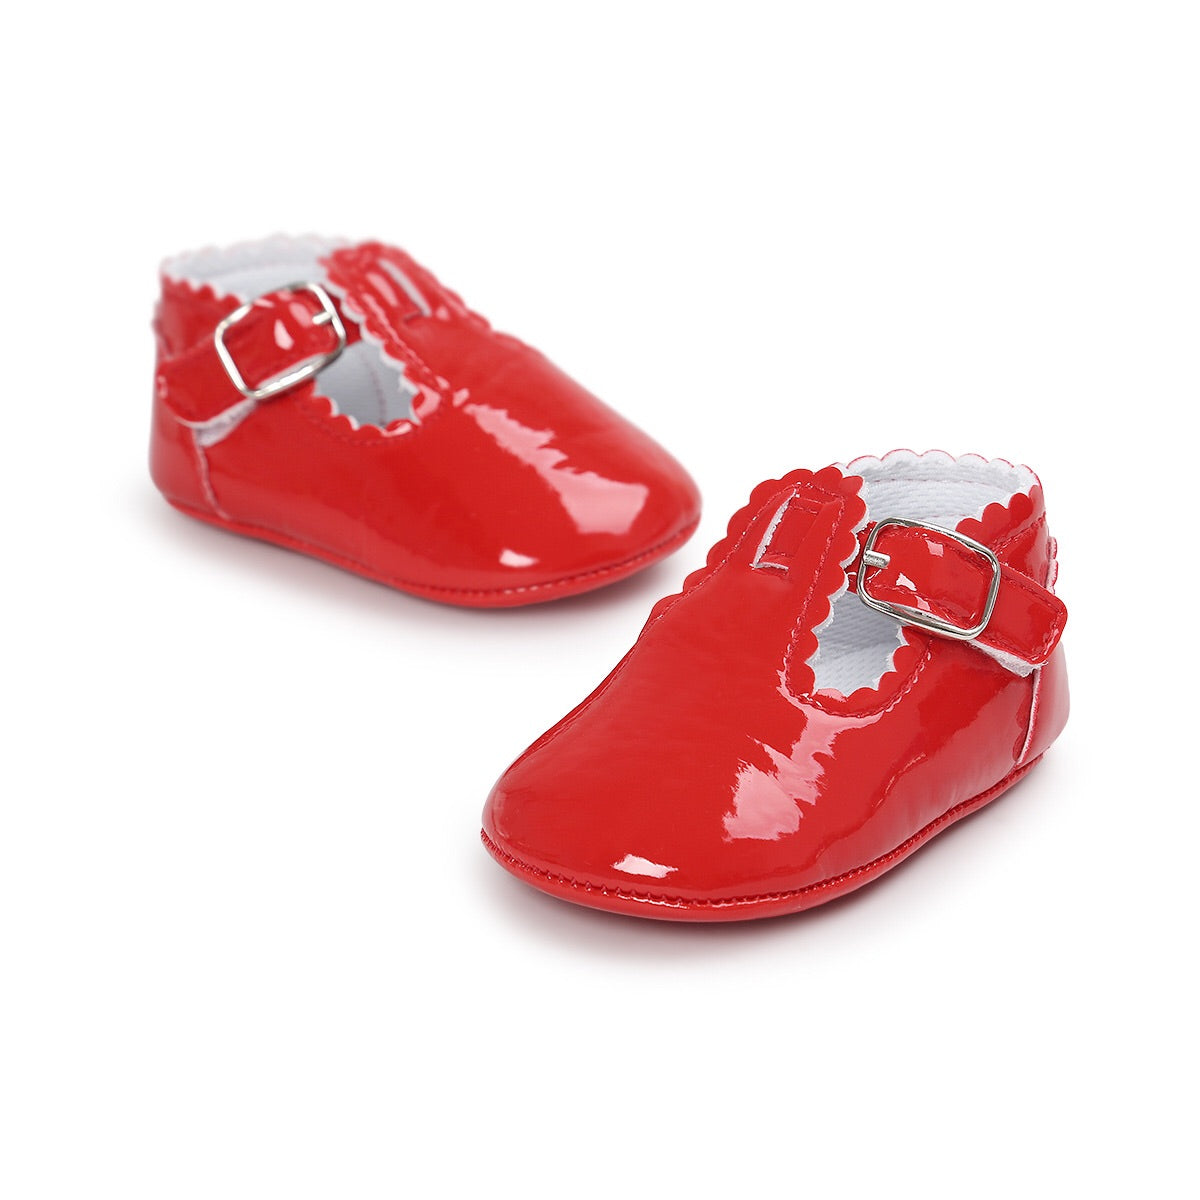 Pu baby shoes